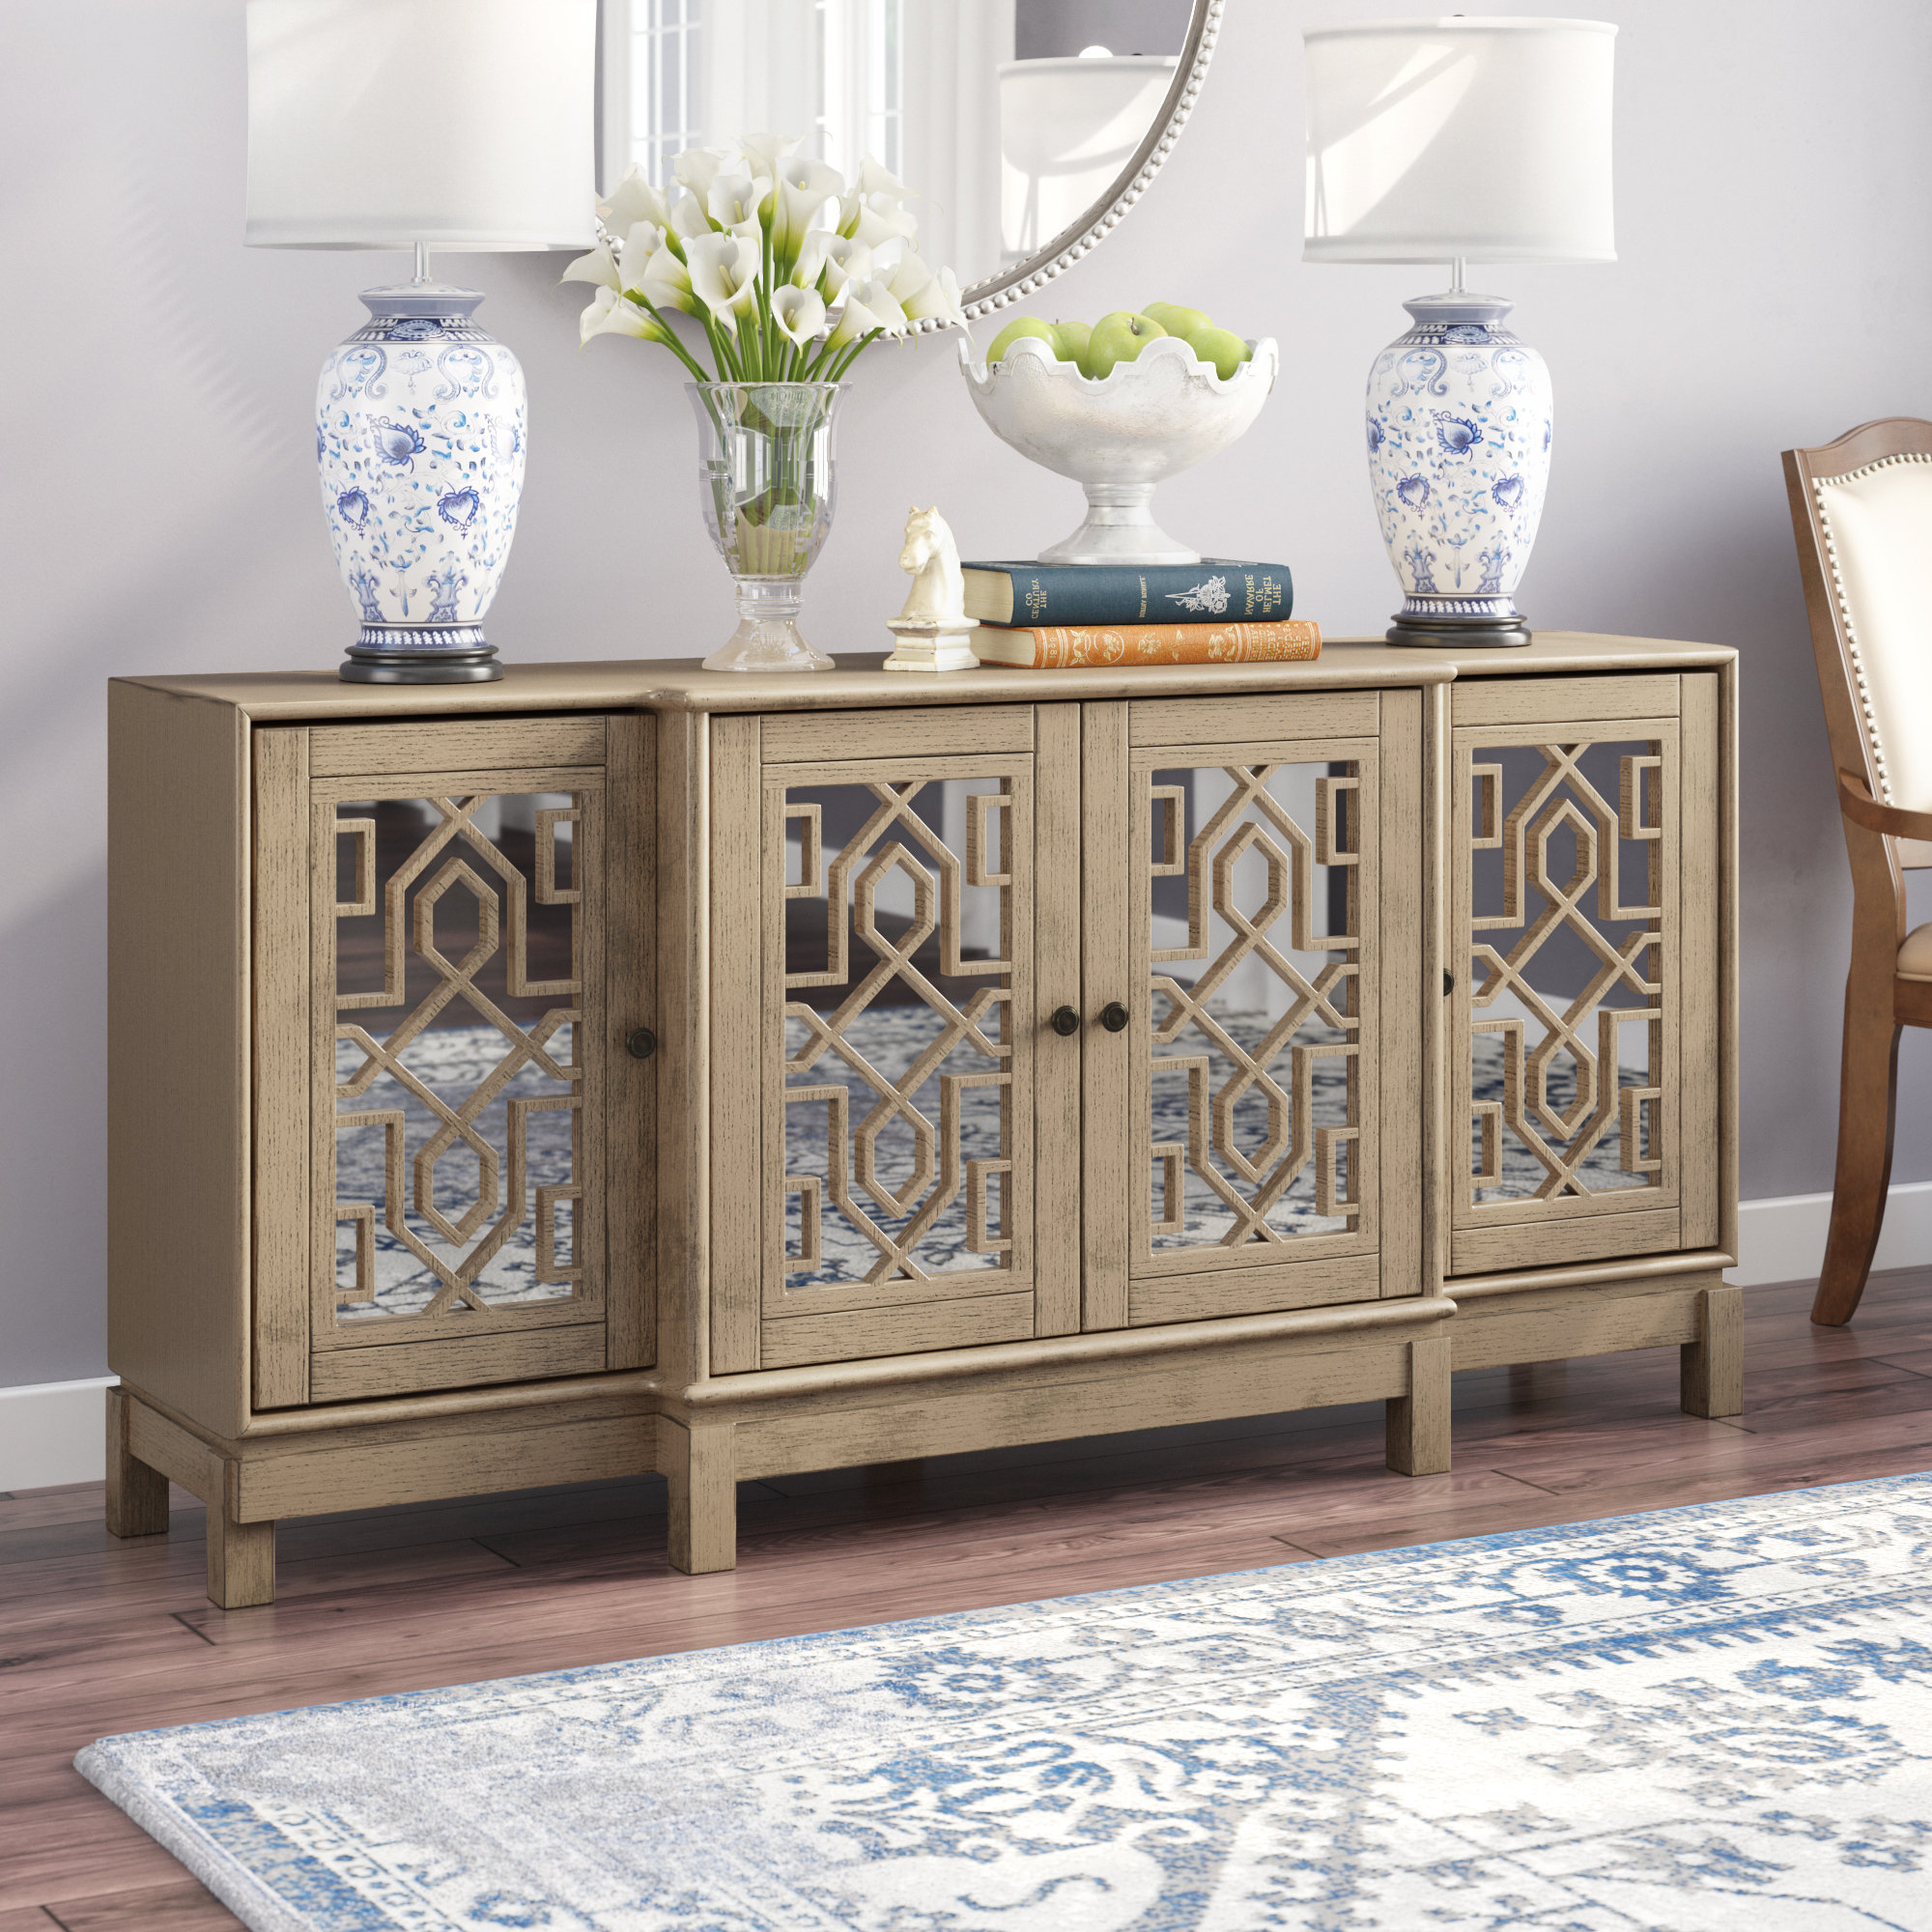 Gold & Silver Sideboards & Buffets You'll Love In 2019   Wayfair With Regard To Wattisham Sideboards (Gallery 3 of 20)